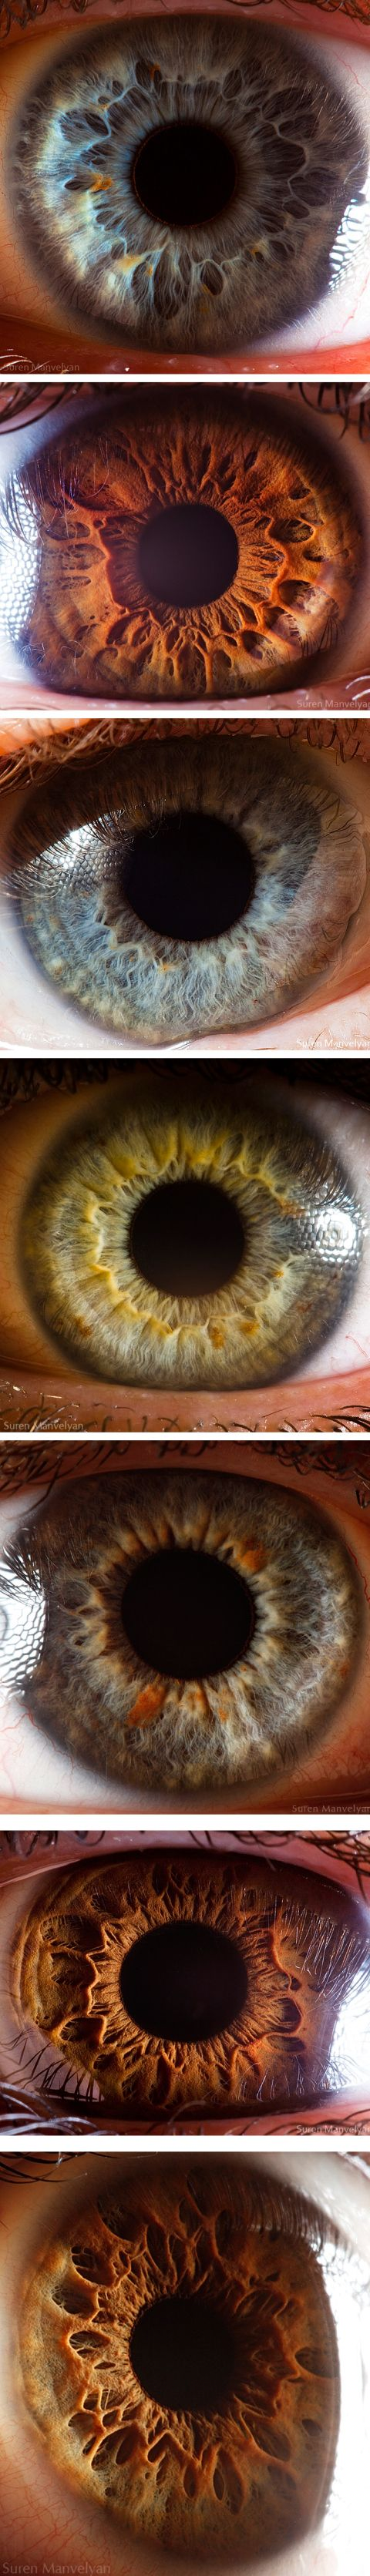 Close up photography of the human eye. Pretty wicked